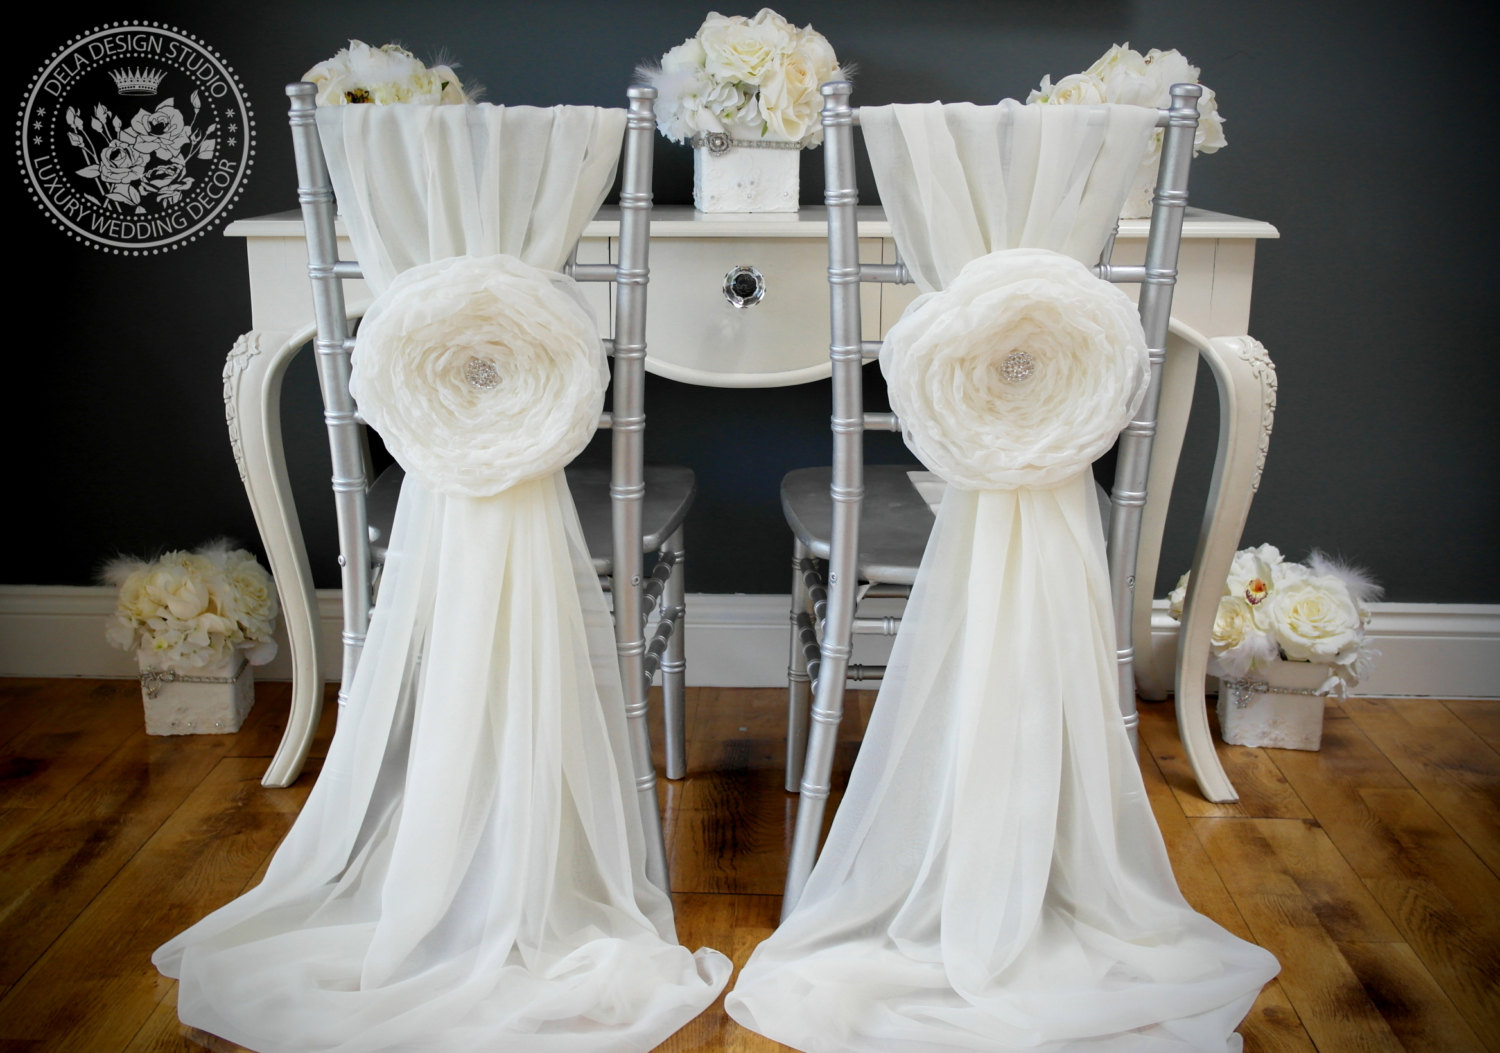 images of chair covers for wedding trex rocking chairs vintage glam white chiffon receptiondiy